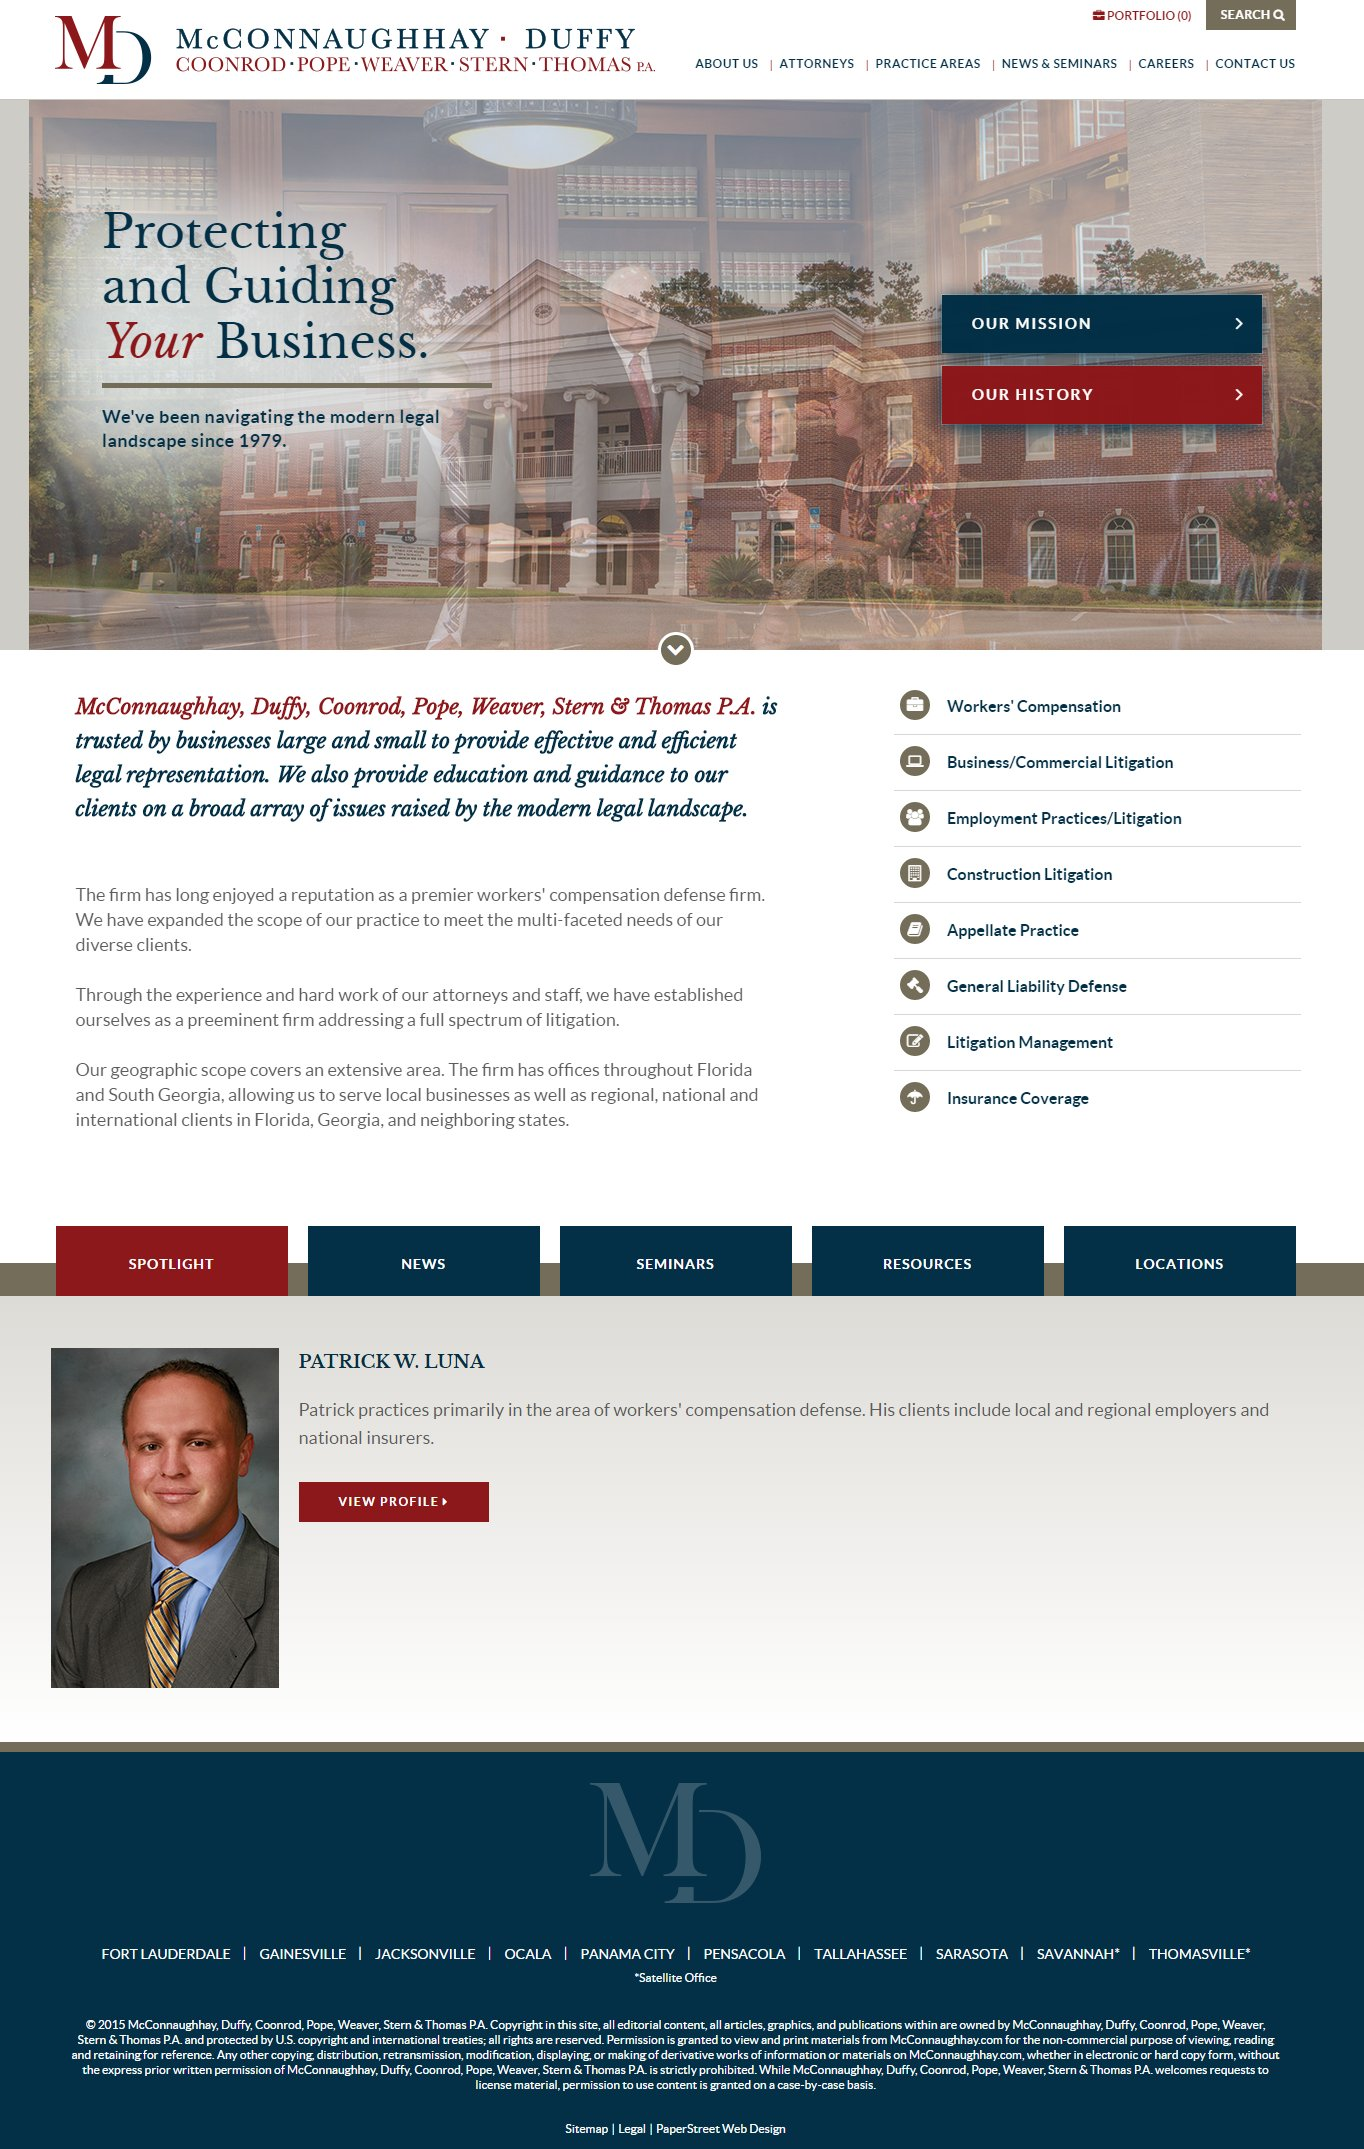 Mcconnaughhay Duffy Coonrod Pope Weaver Stern Thomas P A Launches New Custom Web Design Paperstreet